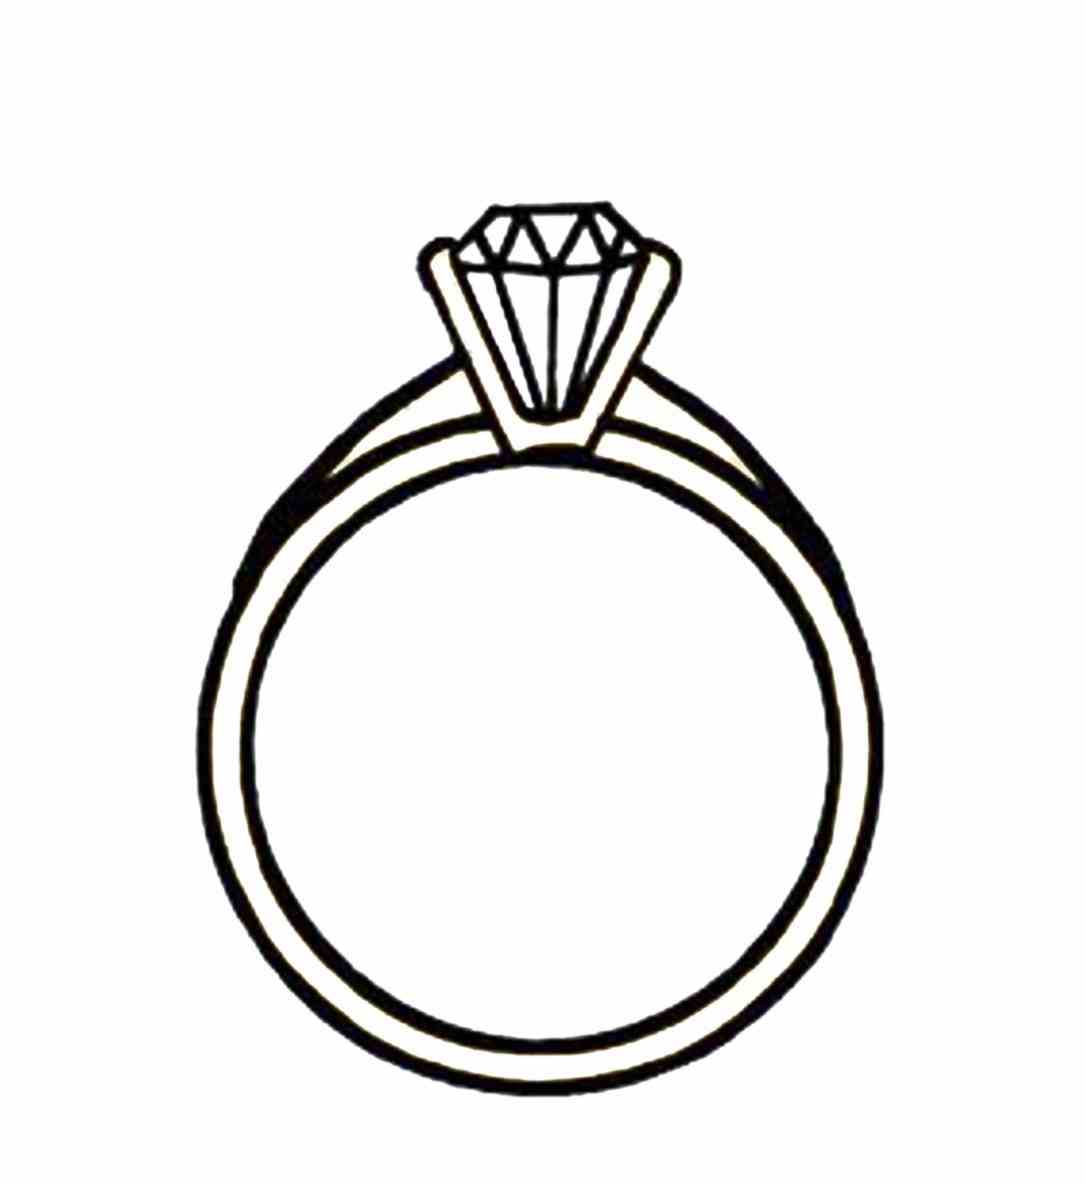 wedding ring drawing at getdrawings com free for personal use rh getdrawings com clipart coloring sheets disney st patrick's clipart coloring sheets disney st patrick's